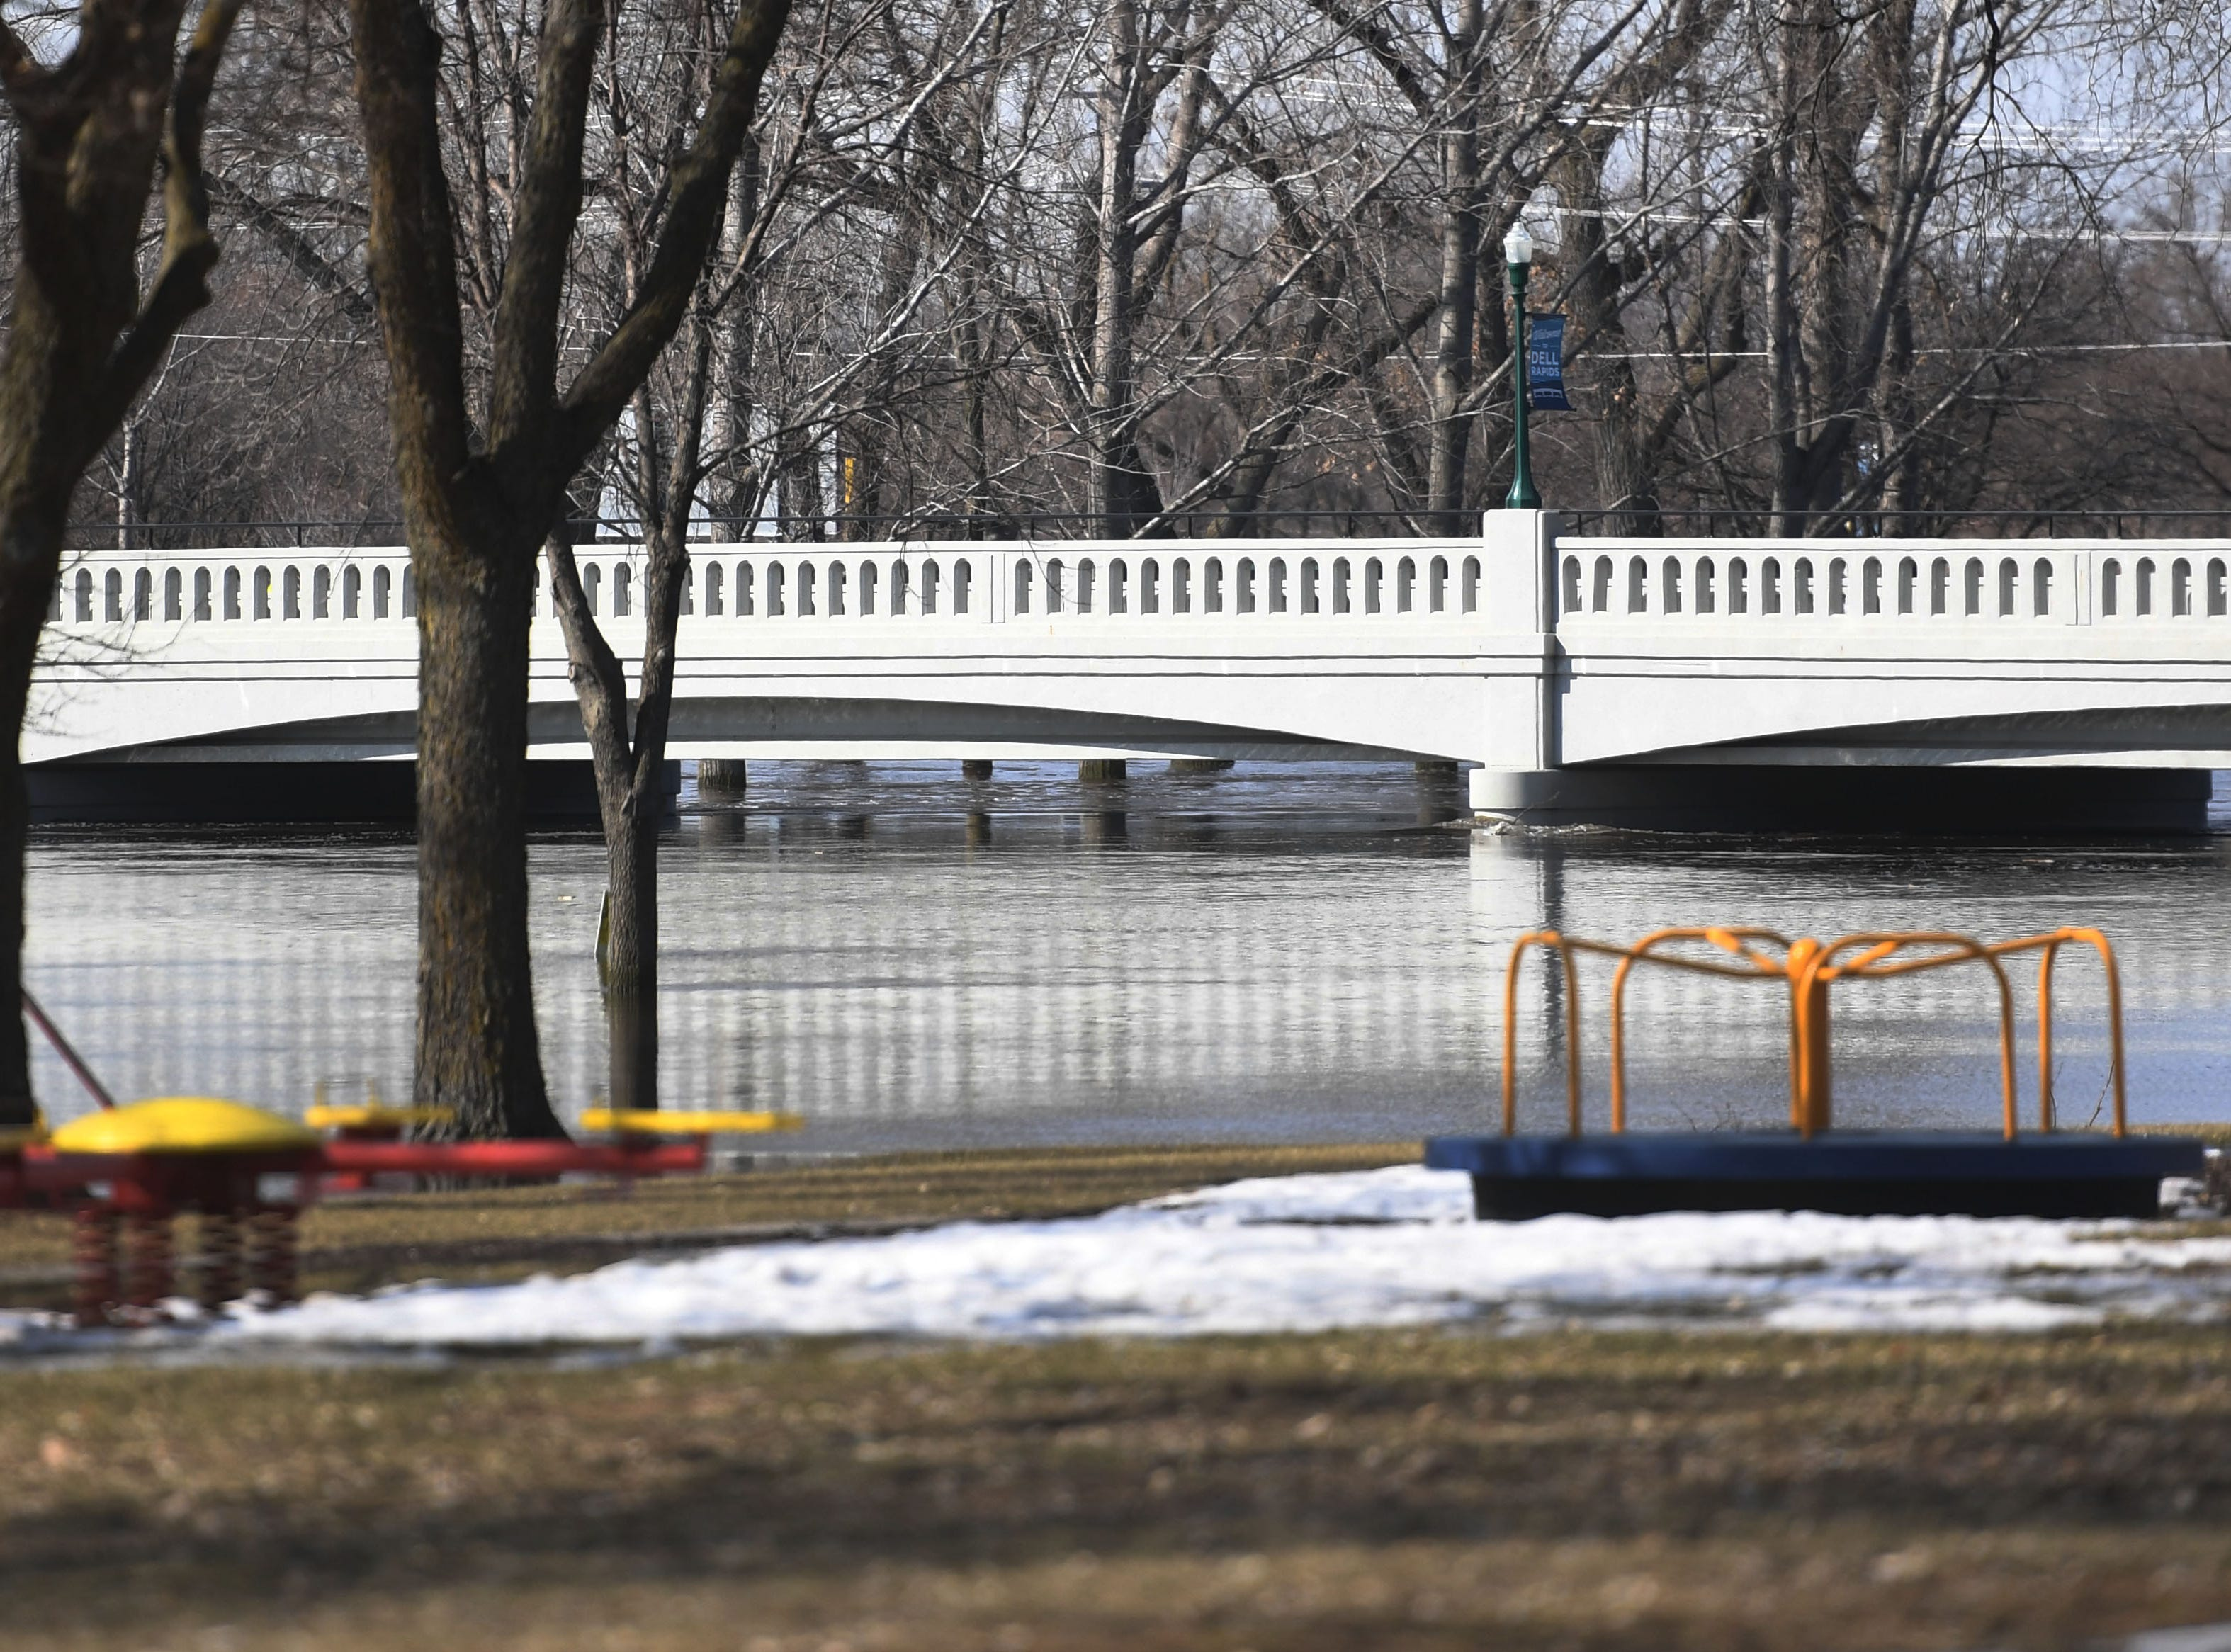 Water nearly reaches underneath a bridge in Dell Rapids Monday, March 25, in Dell Rapids, S.D.